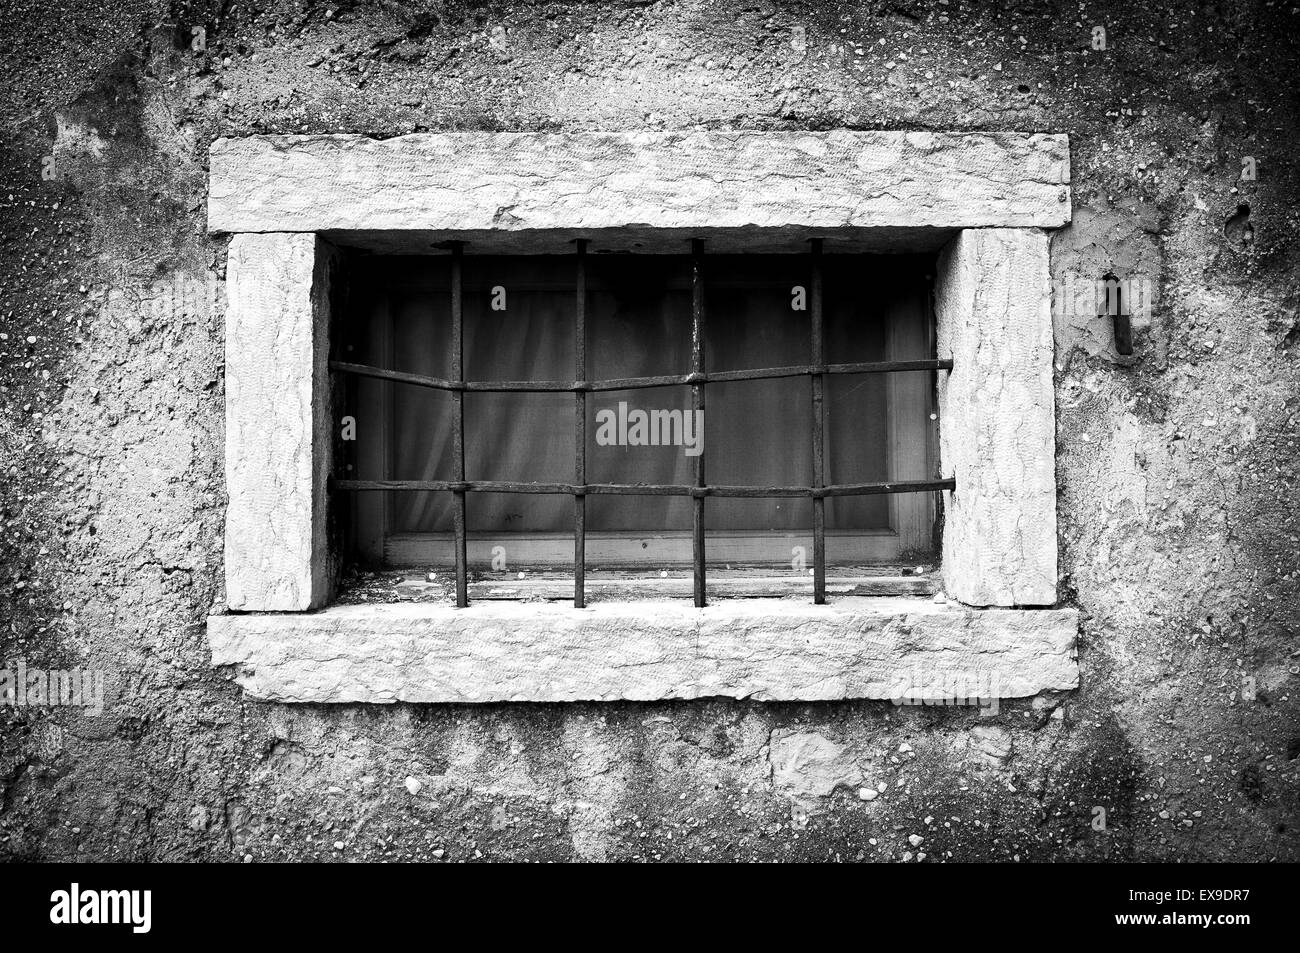 security window grill metal stockfotos security window grill metal bilder alamy. Black Bedroom Furniture Sets. Home Design Ideas